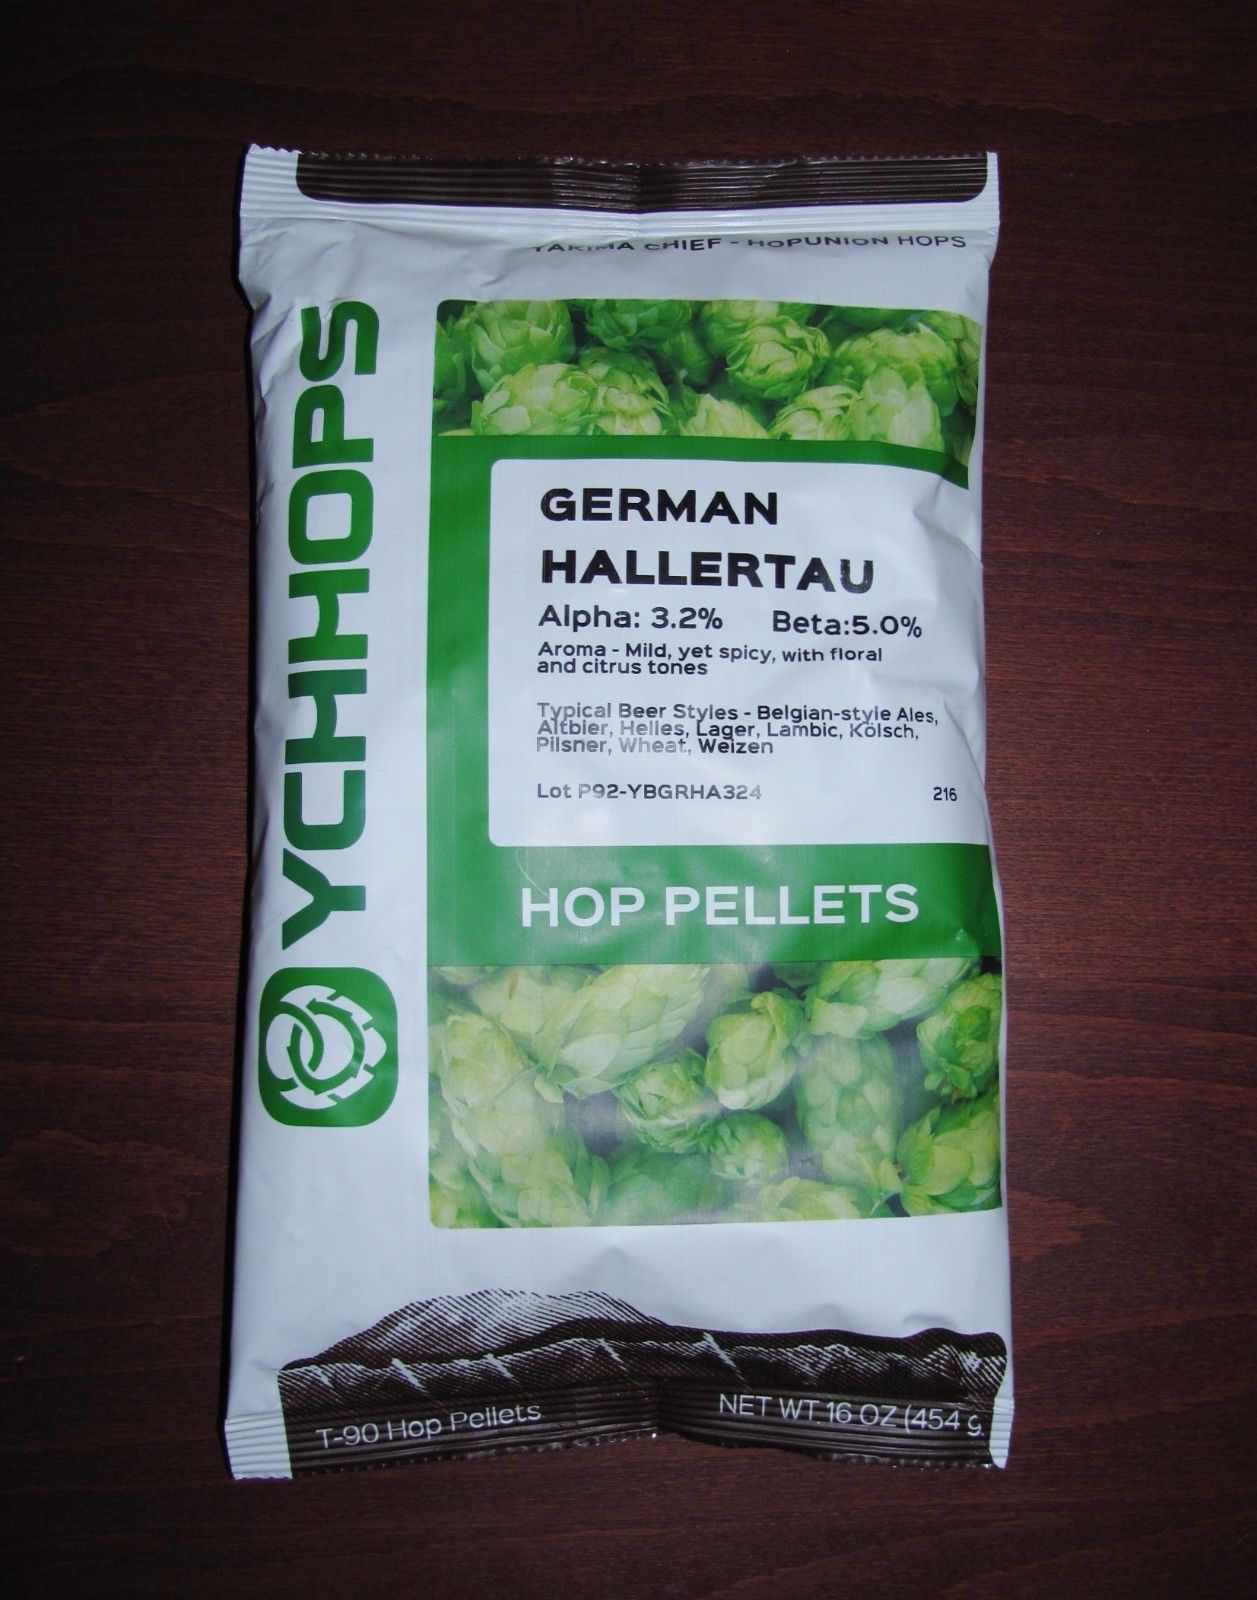 HOPS 1LB GERMAN HALLERTAU YCHHOPS HOP PELLETS FOR BEER PACKED IN NITRO FOIL BAG